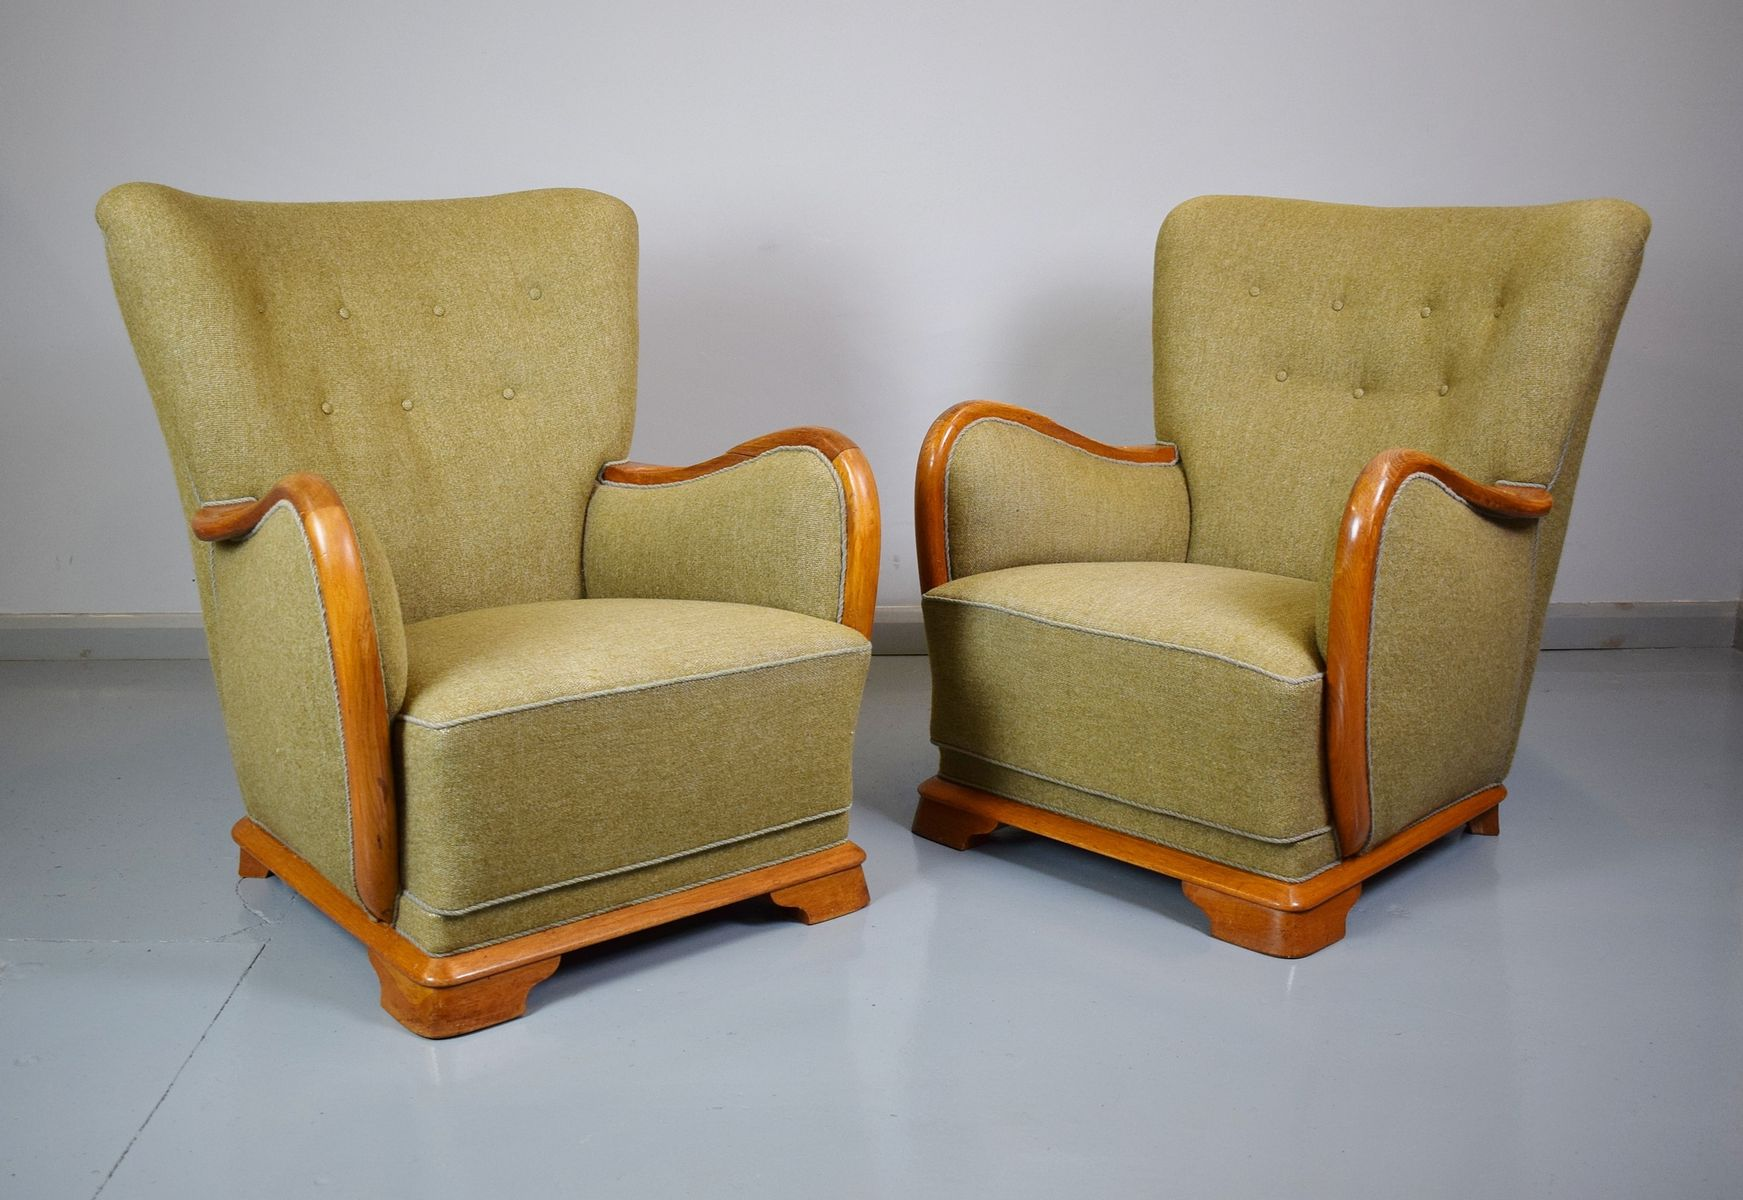 French Club Chair #30 - Vintage French Club Chair, 1940s